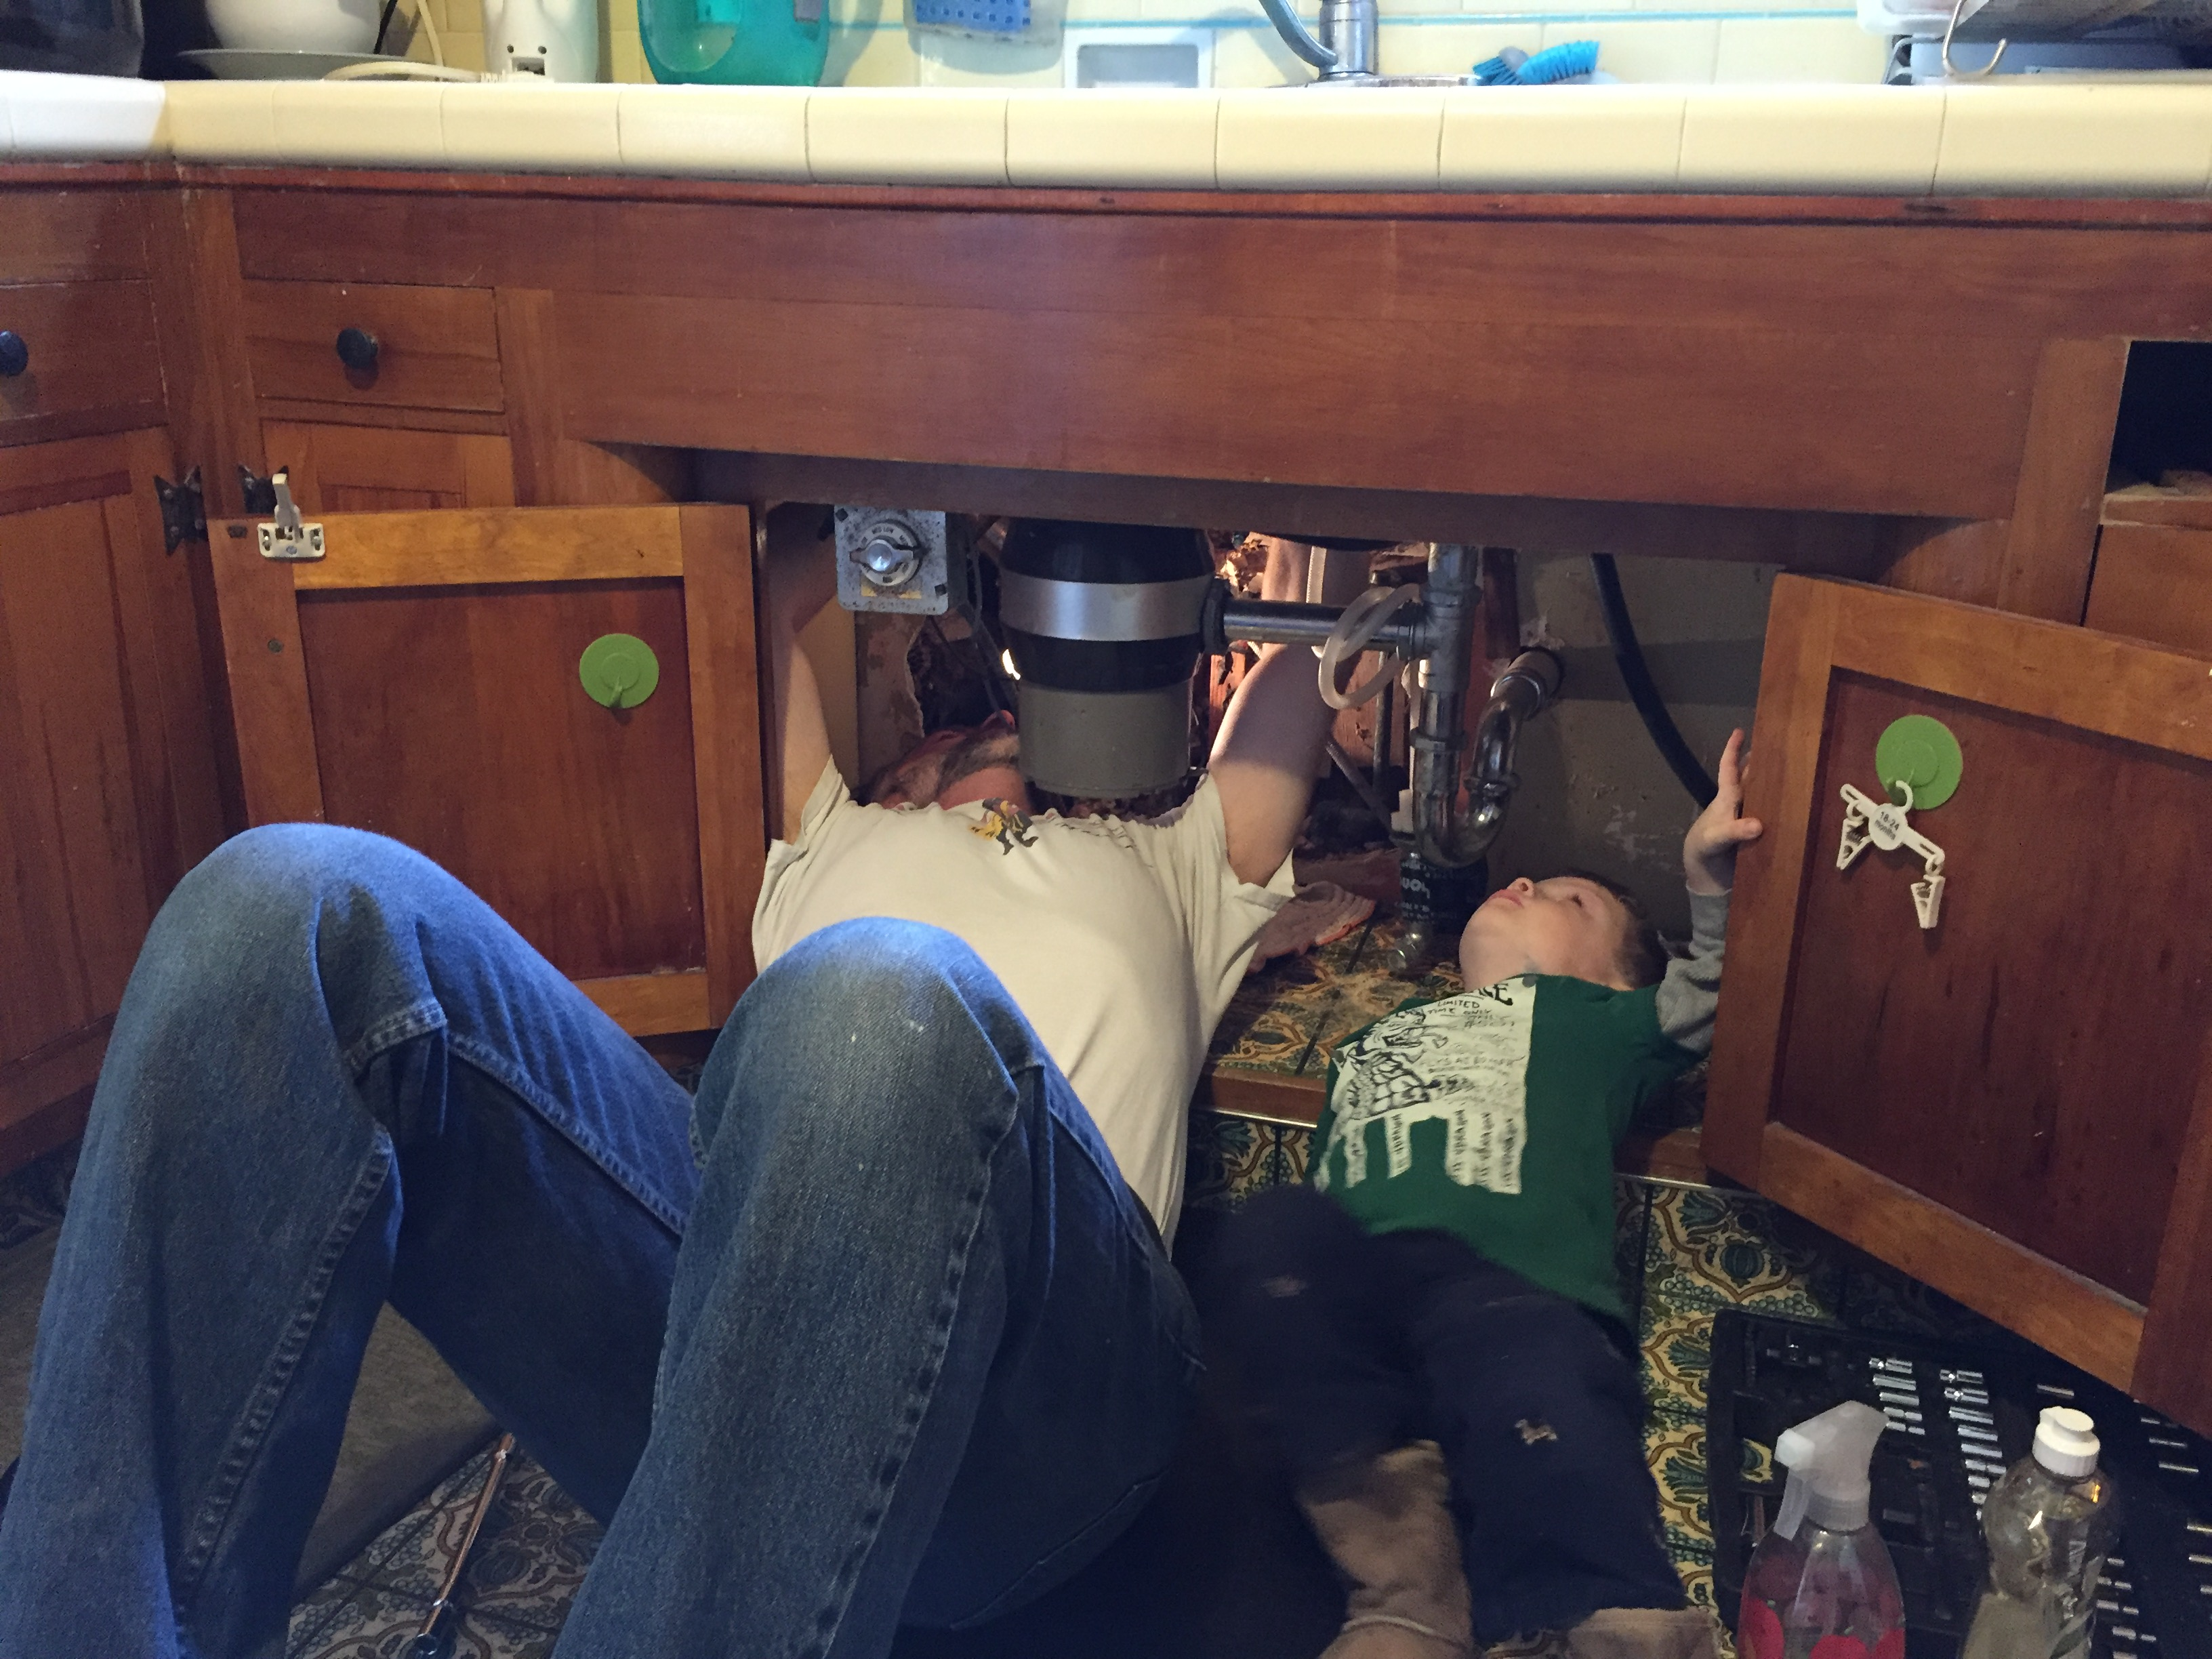 Me and Number Two fixing plumbing